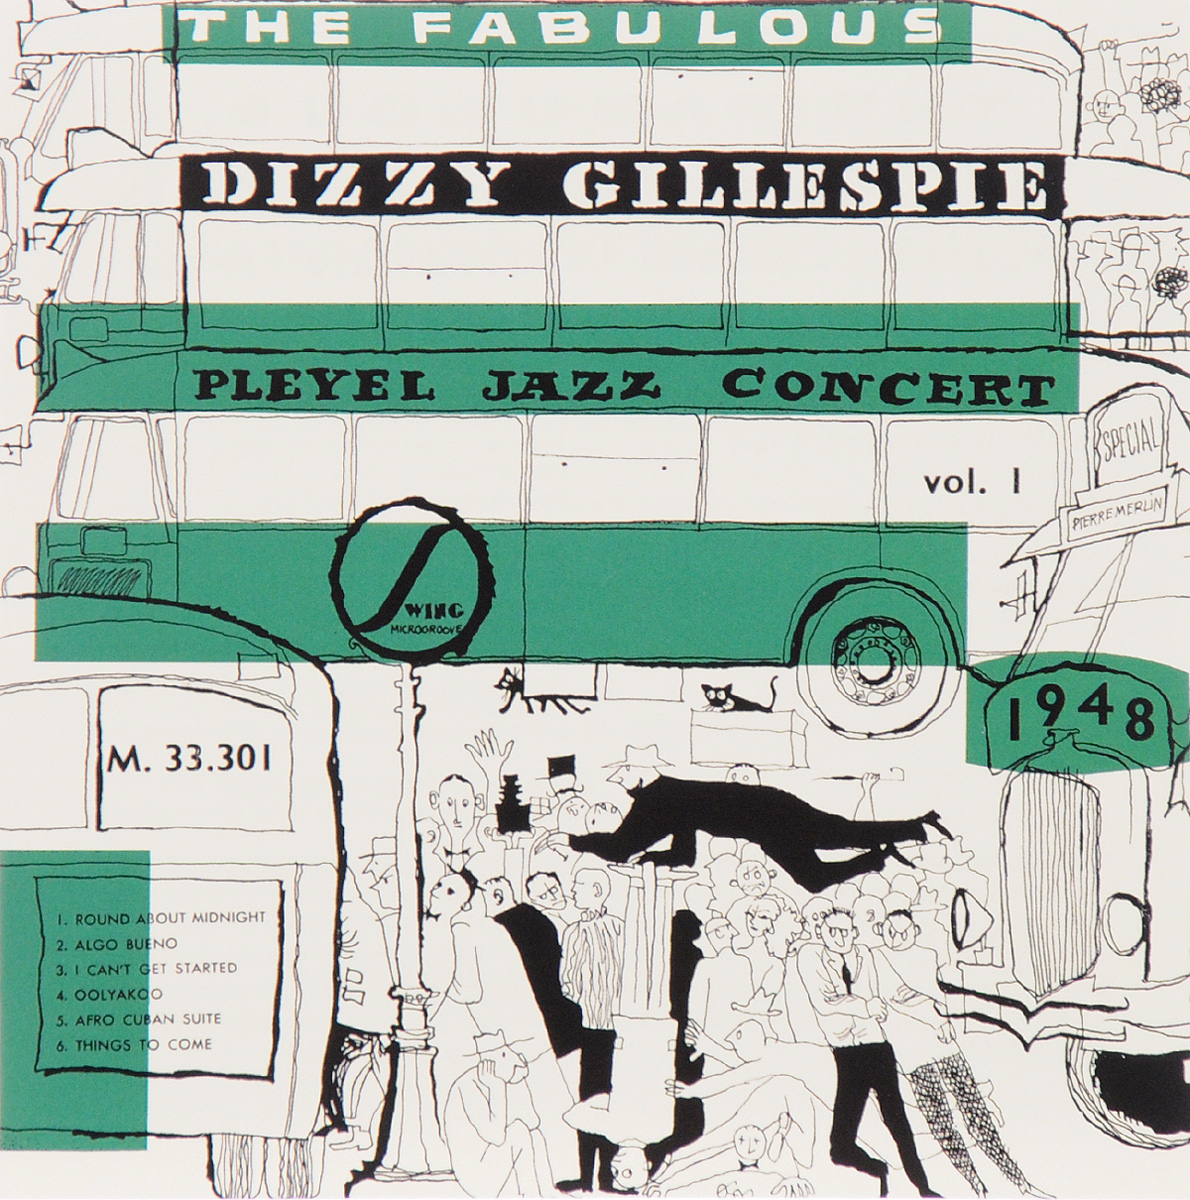 Диззи Гиллеспи Dizzy Gillespie. Pleyel Jazz Concert 1948 professional selmer 54 bb tenor saxophone brass concert music instrument sax nickel plated shell buttons with case mouthpiece